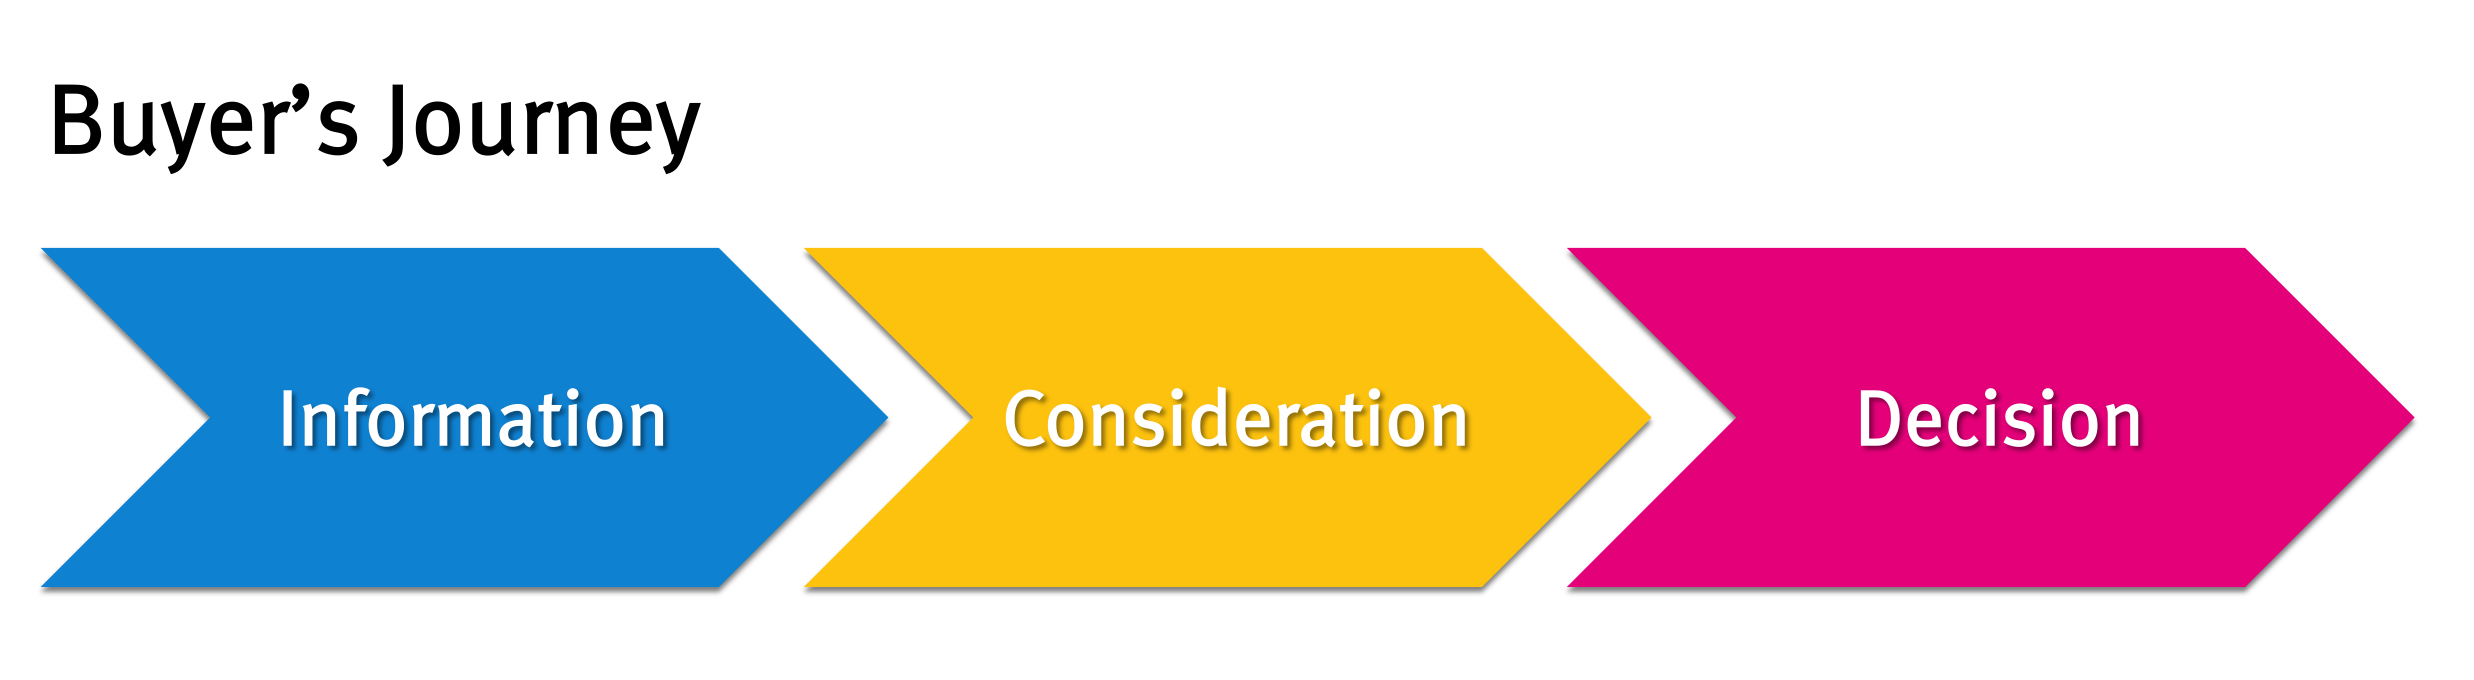 buyers journey information consideration inbound decision